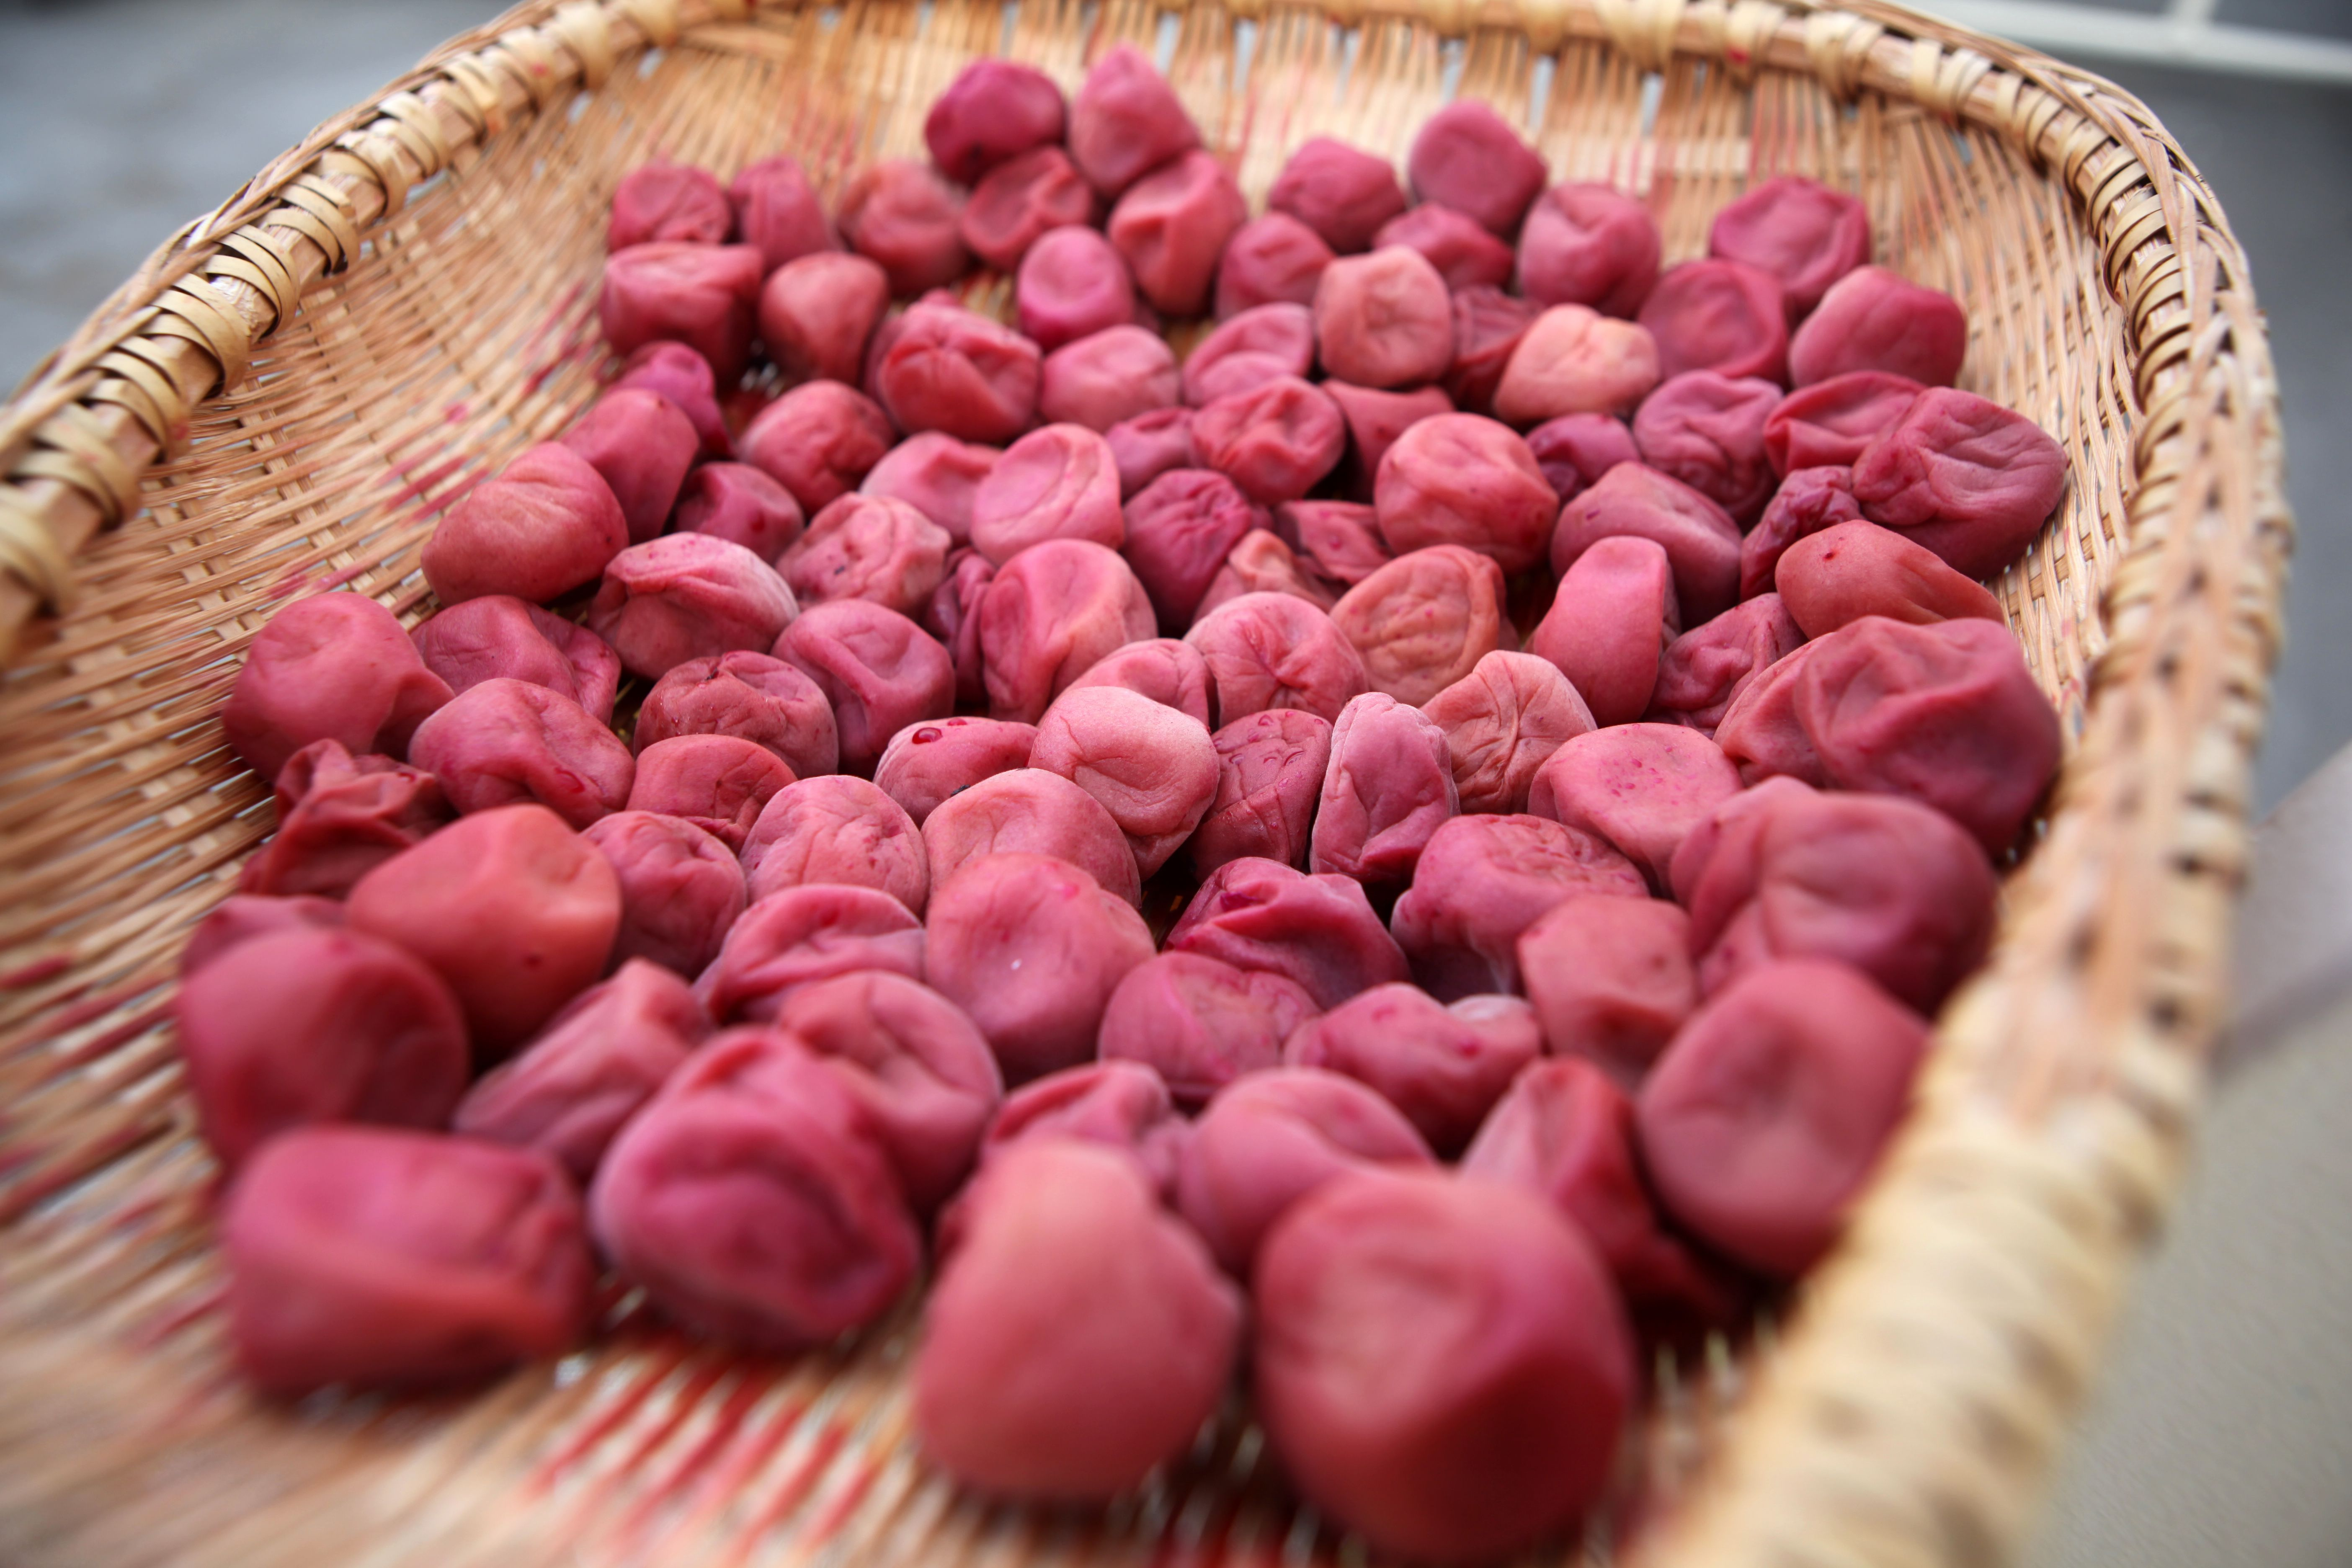 outdoor kitchen ideas for small spaces wallpaper what are umeboshi or umezuke, pickled ume?